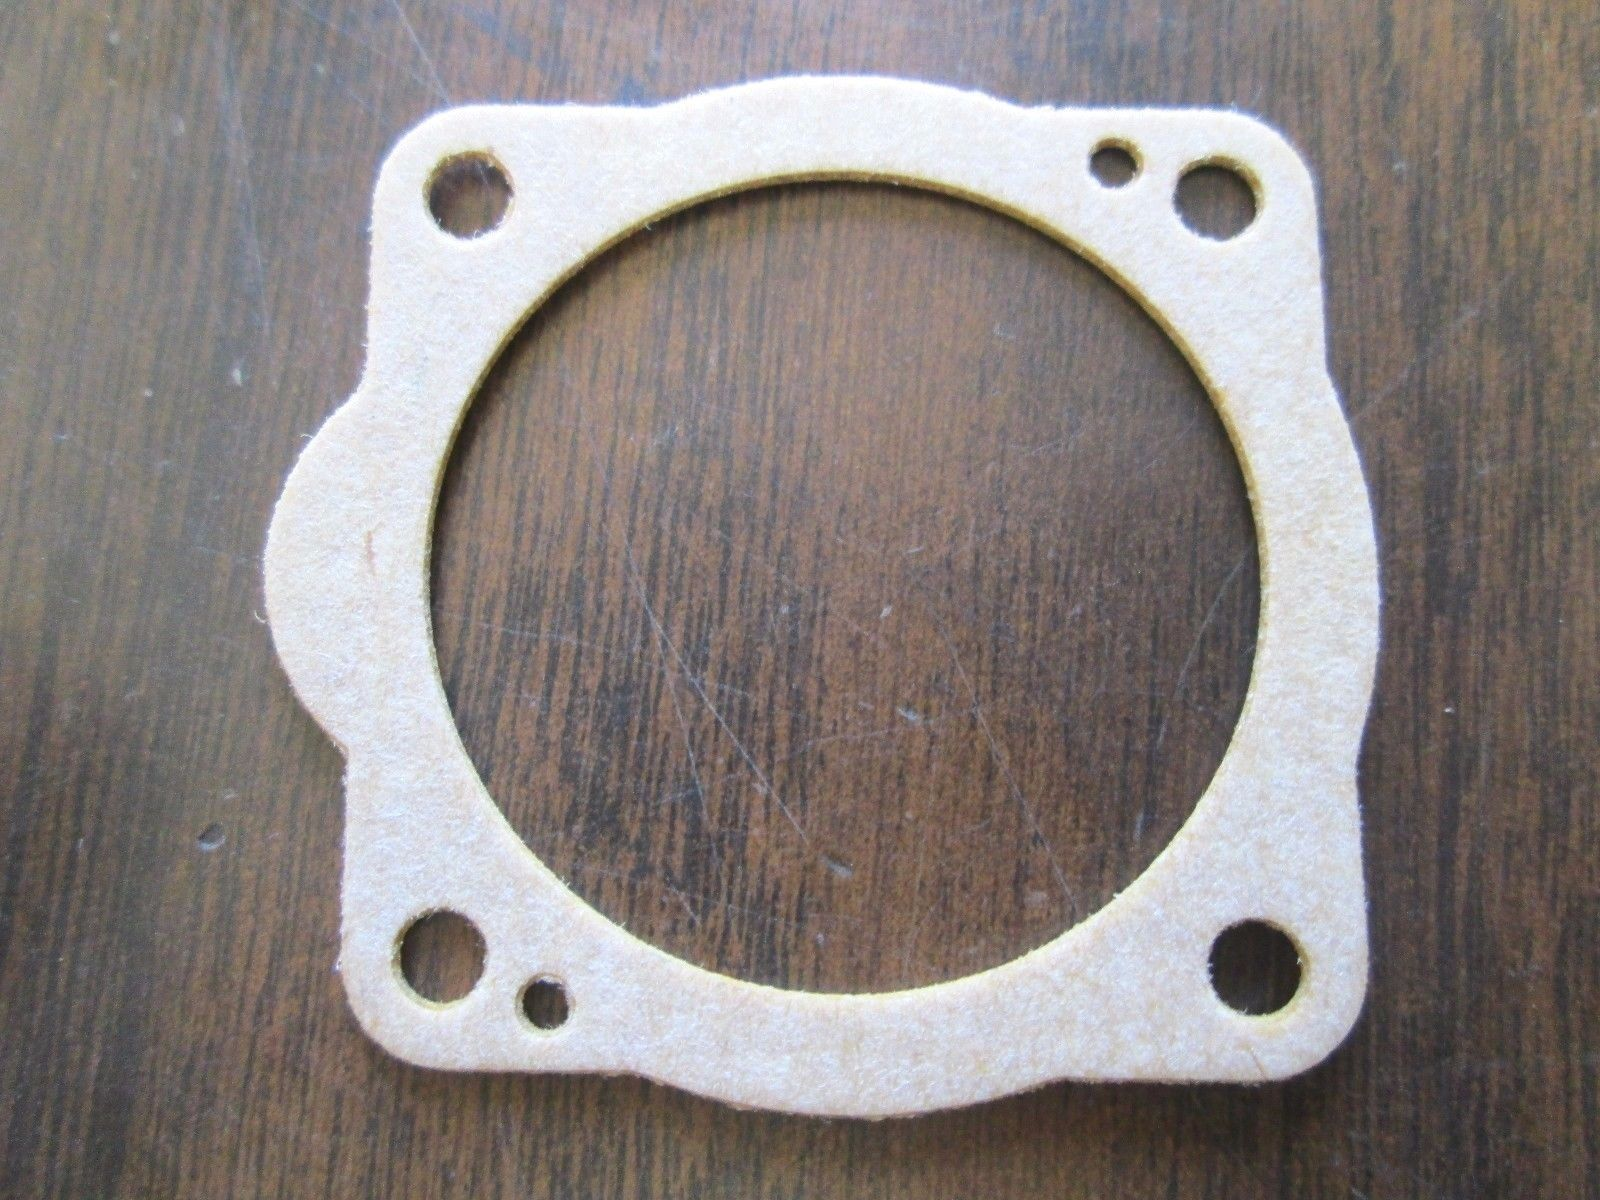 Primary image for 4112 129 0900, Stihl, Gasket Diaphragm